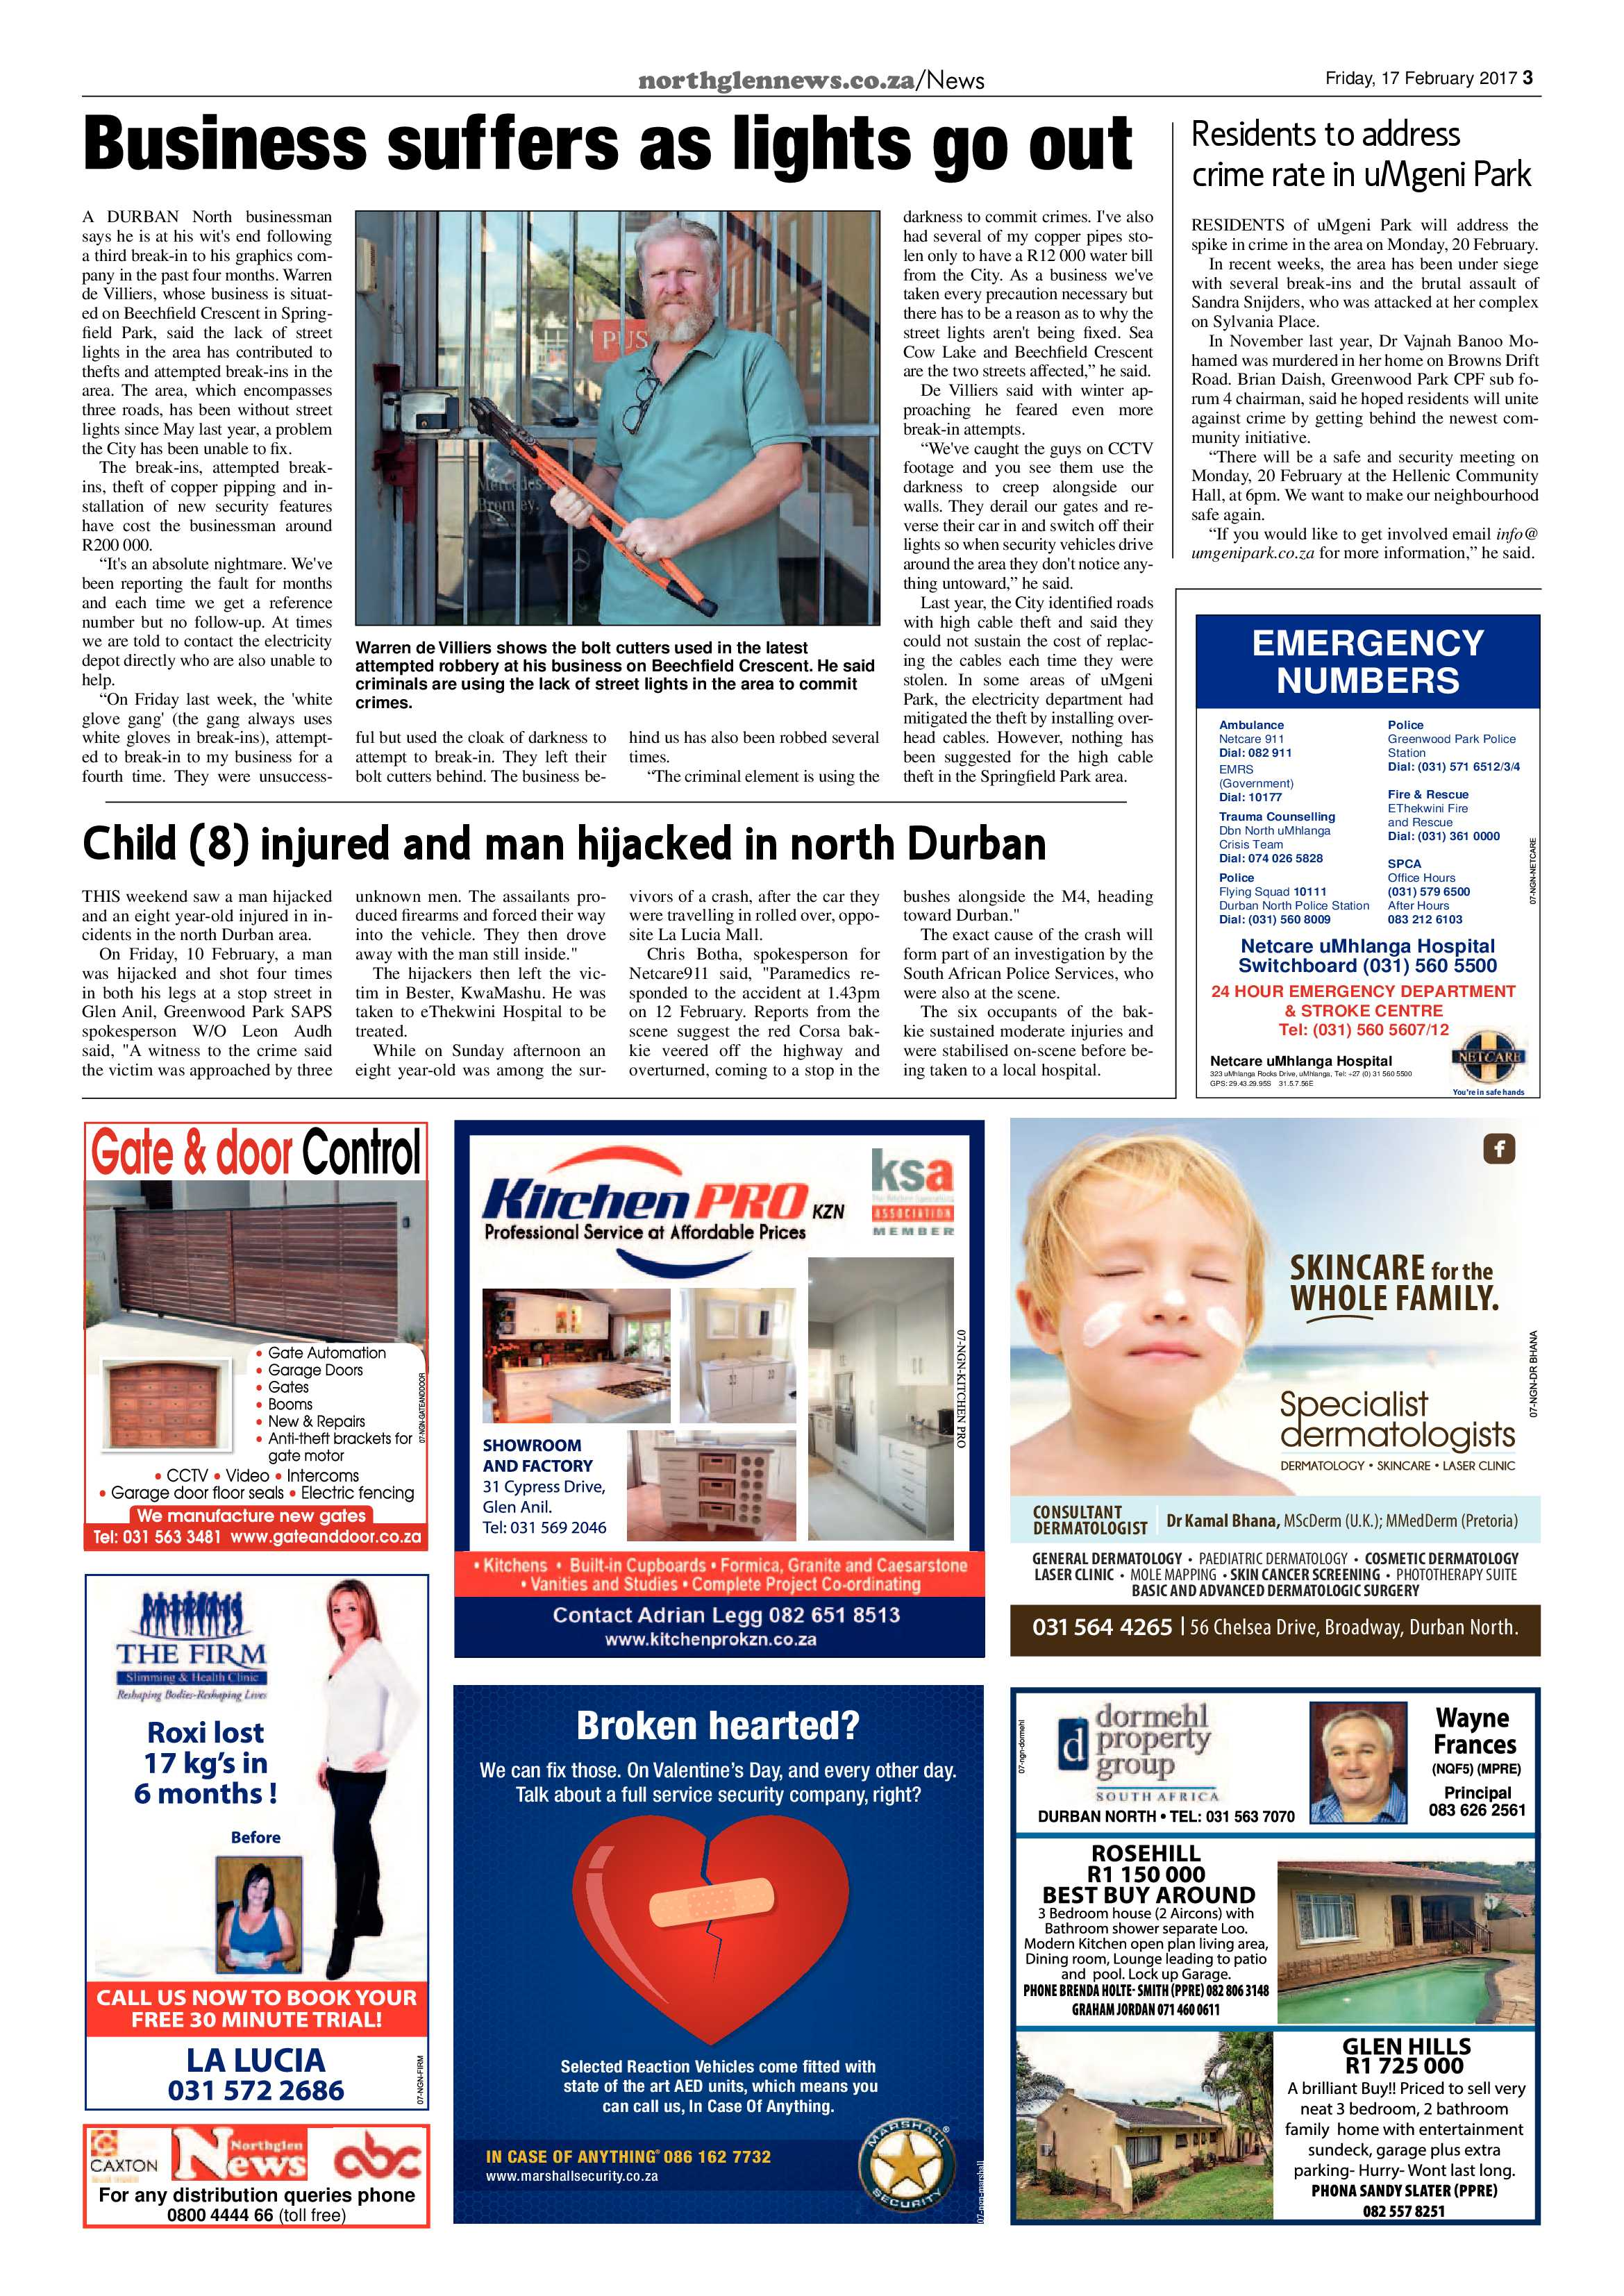 northglen-news-17-february-2017-epapers-page-3